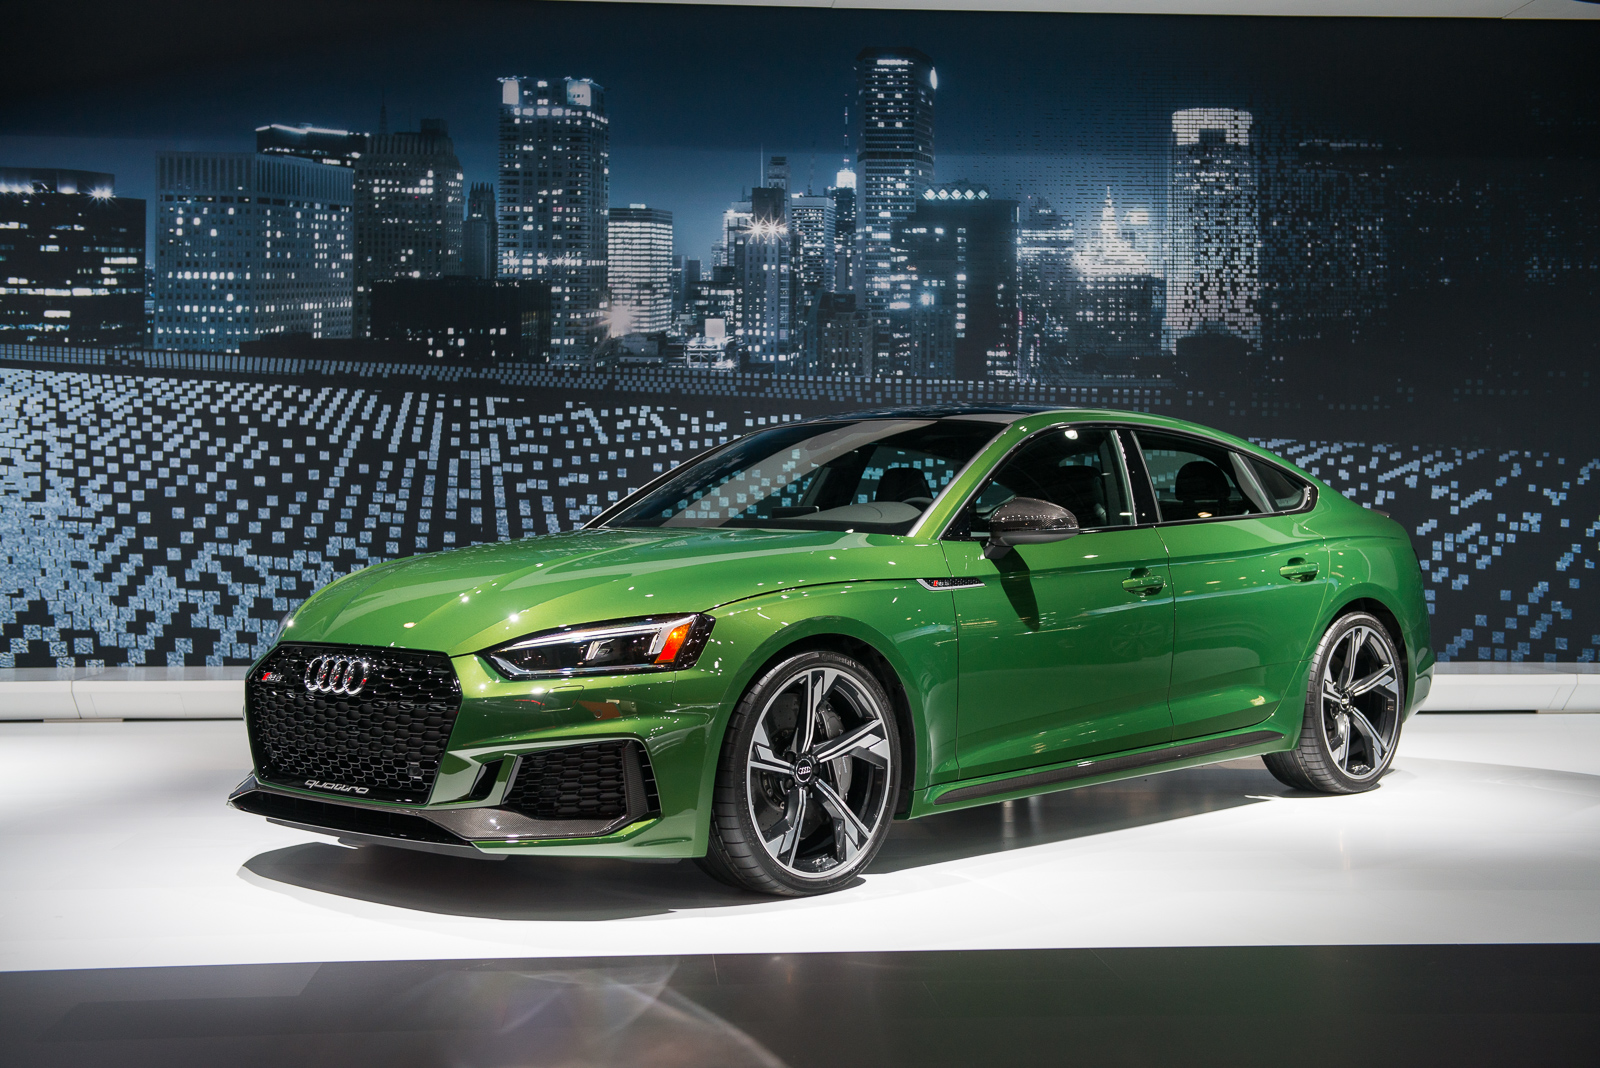 Baby got back: 2019 Audi RS 5 Sportback debuts in New York